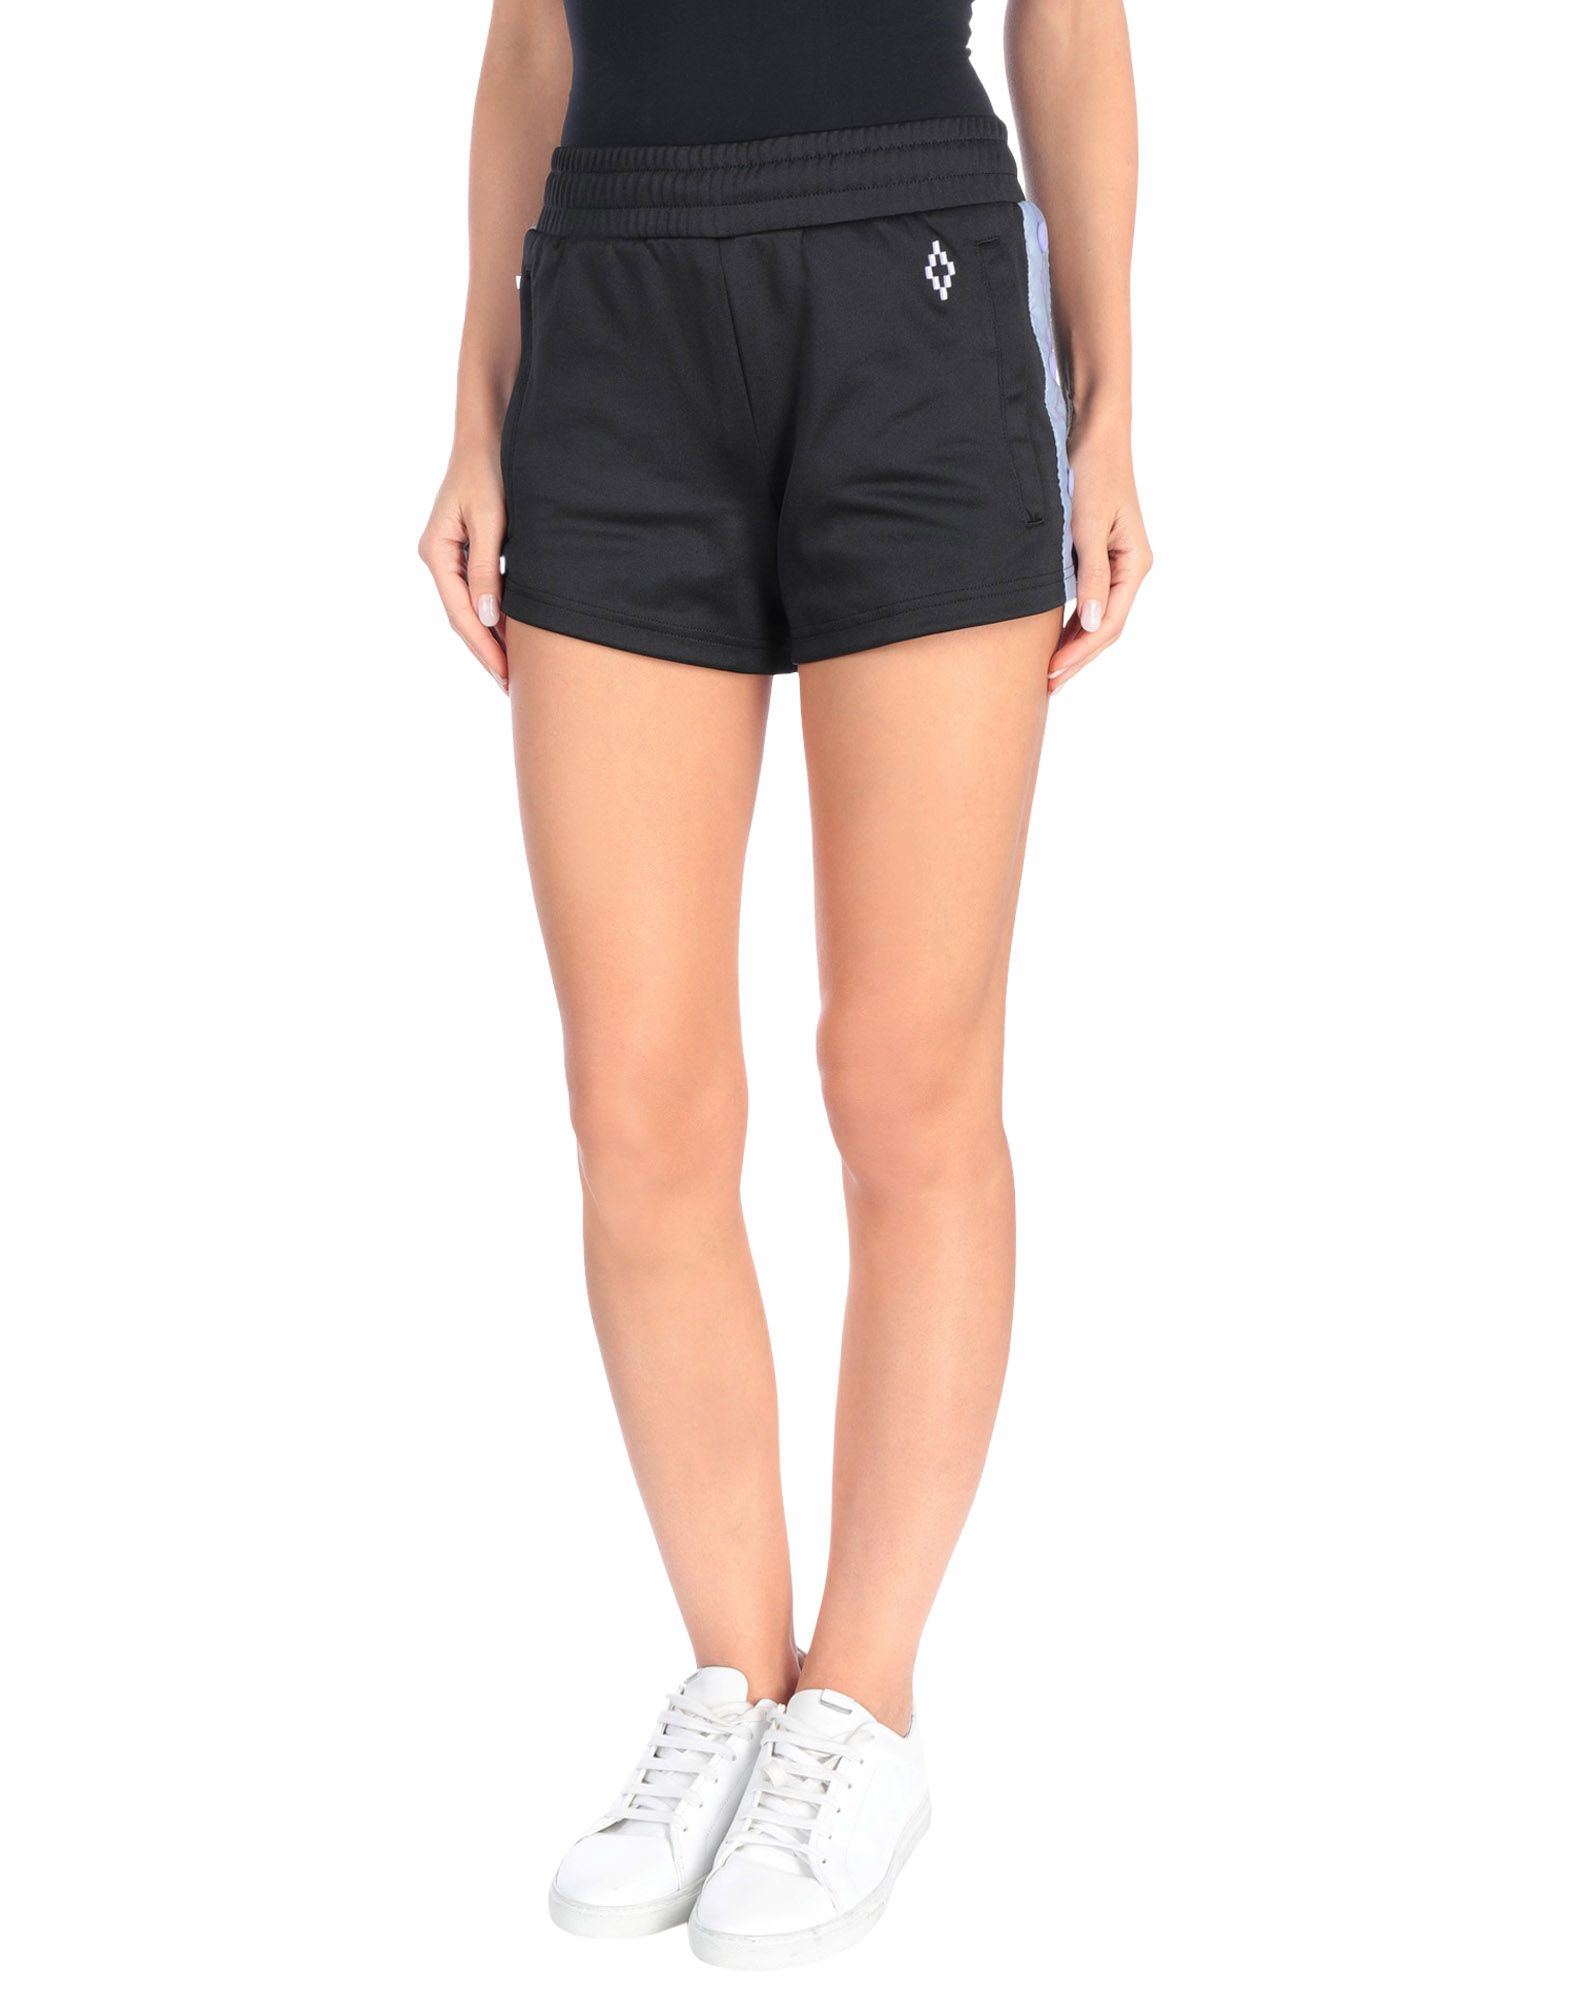 MARCELO BURLON Shorts. jersey, logo, side seam stripes, solid color, multipockets, drawstring closure, mid rise, regular fit, tapered leg, sporty. 55% Polyester, 45% Cotton